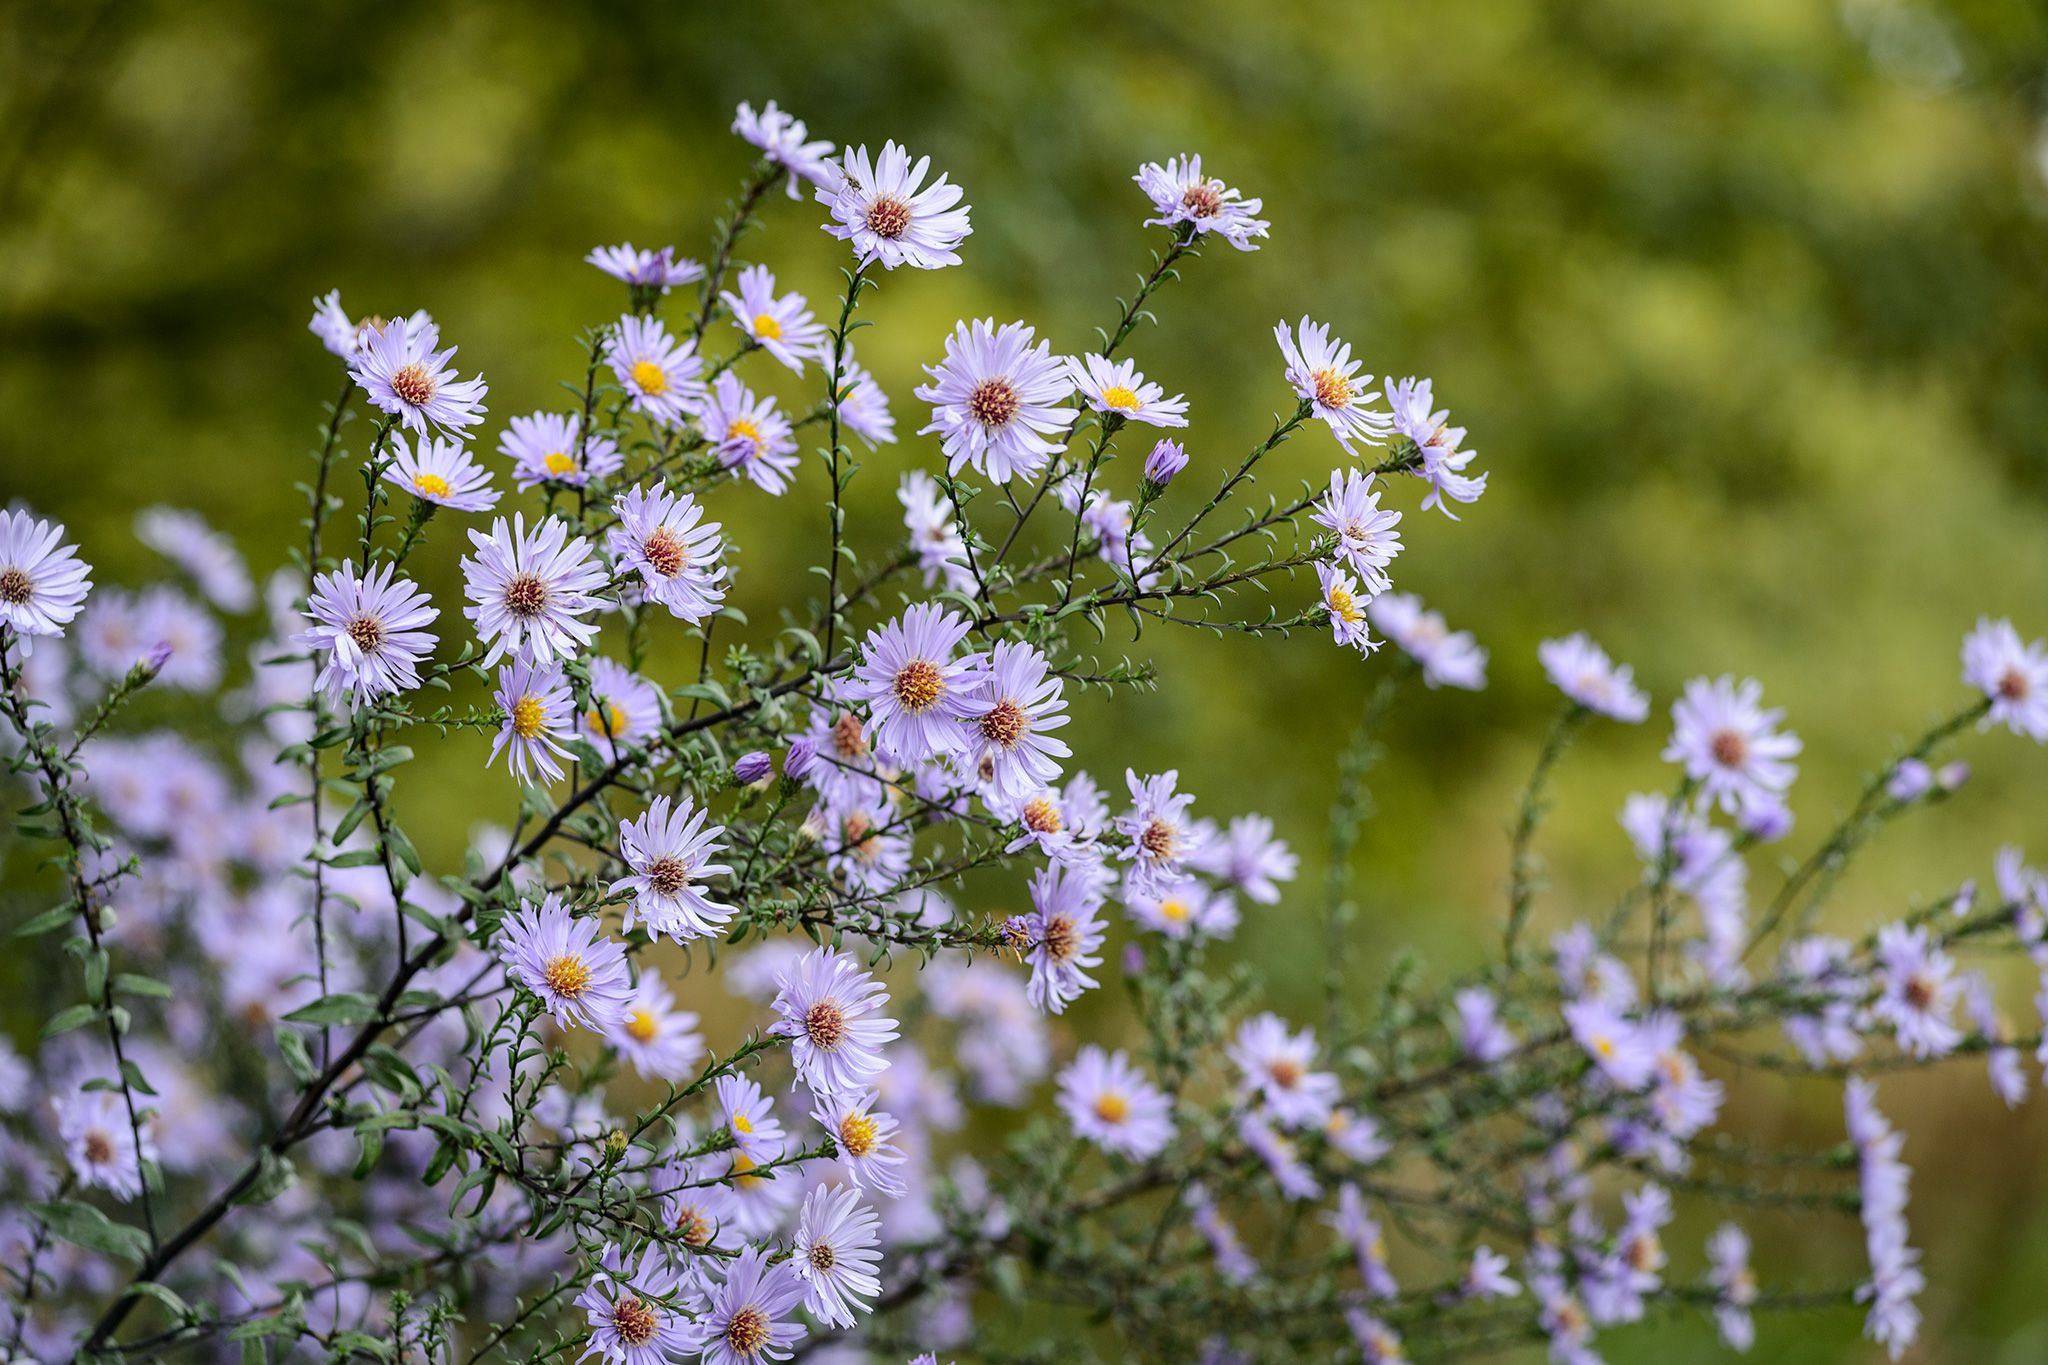 Image Result For Symphyotrichum Laeve Calliope Cottage Garden Plants How To Attract Birds Plants